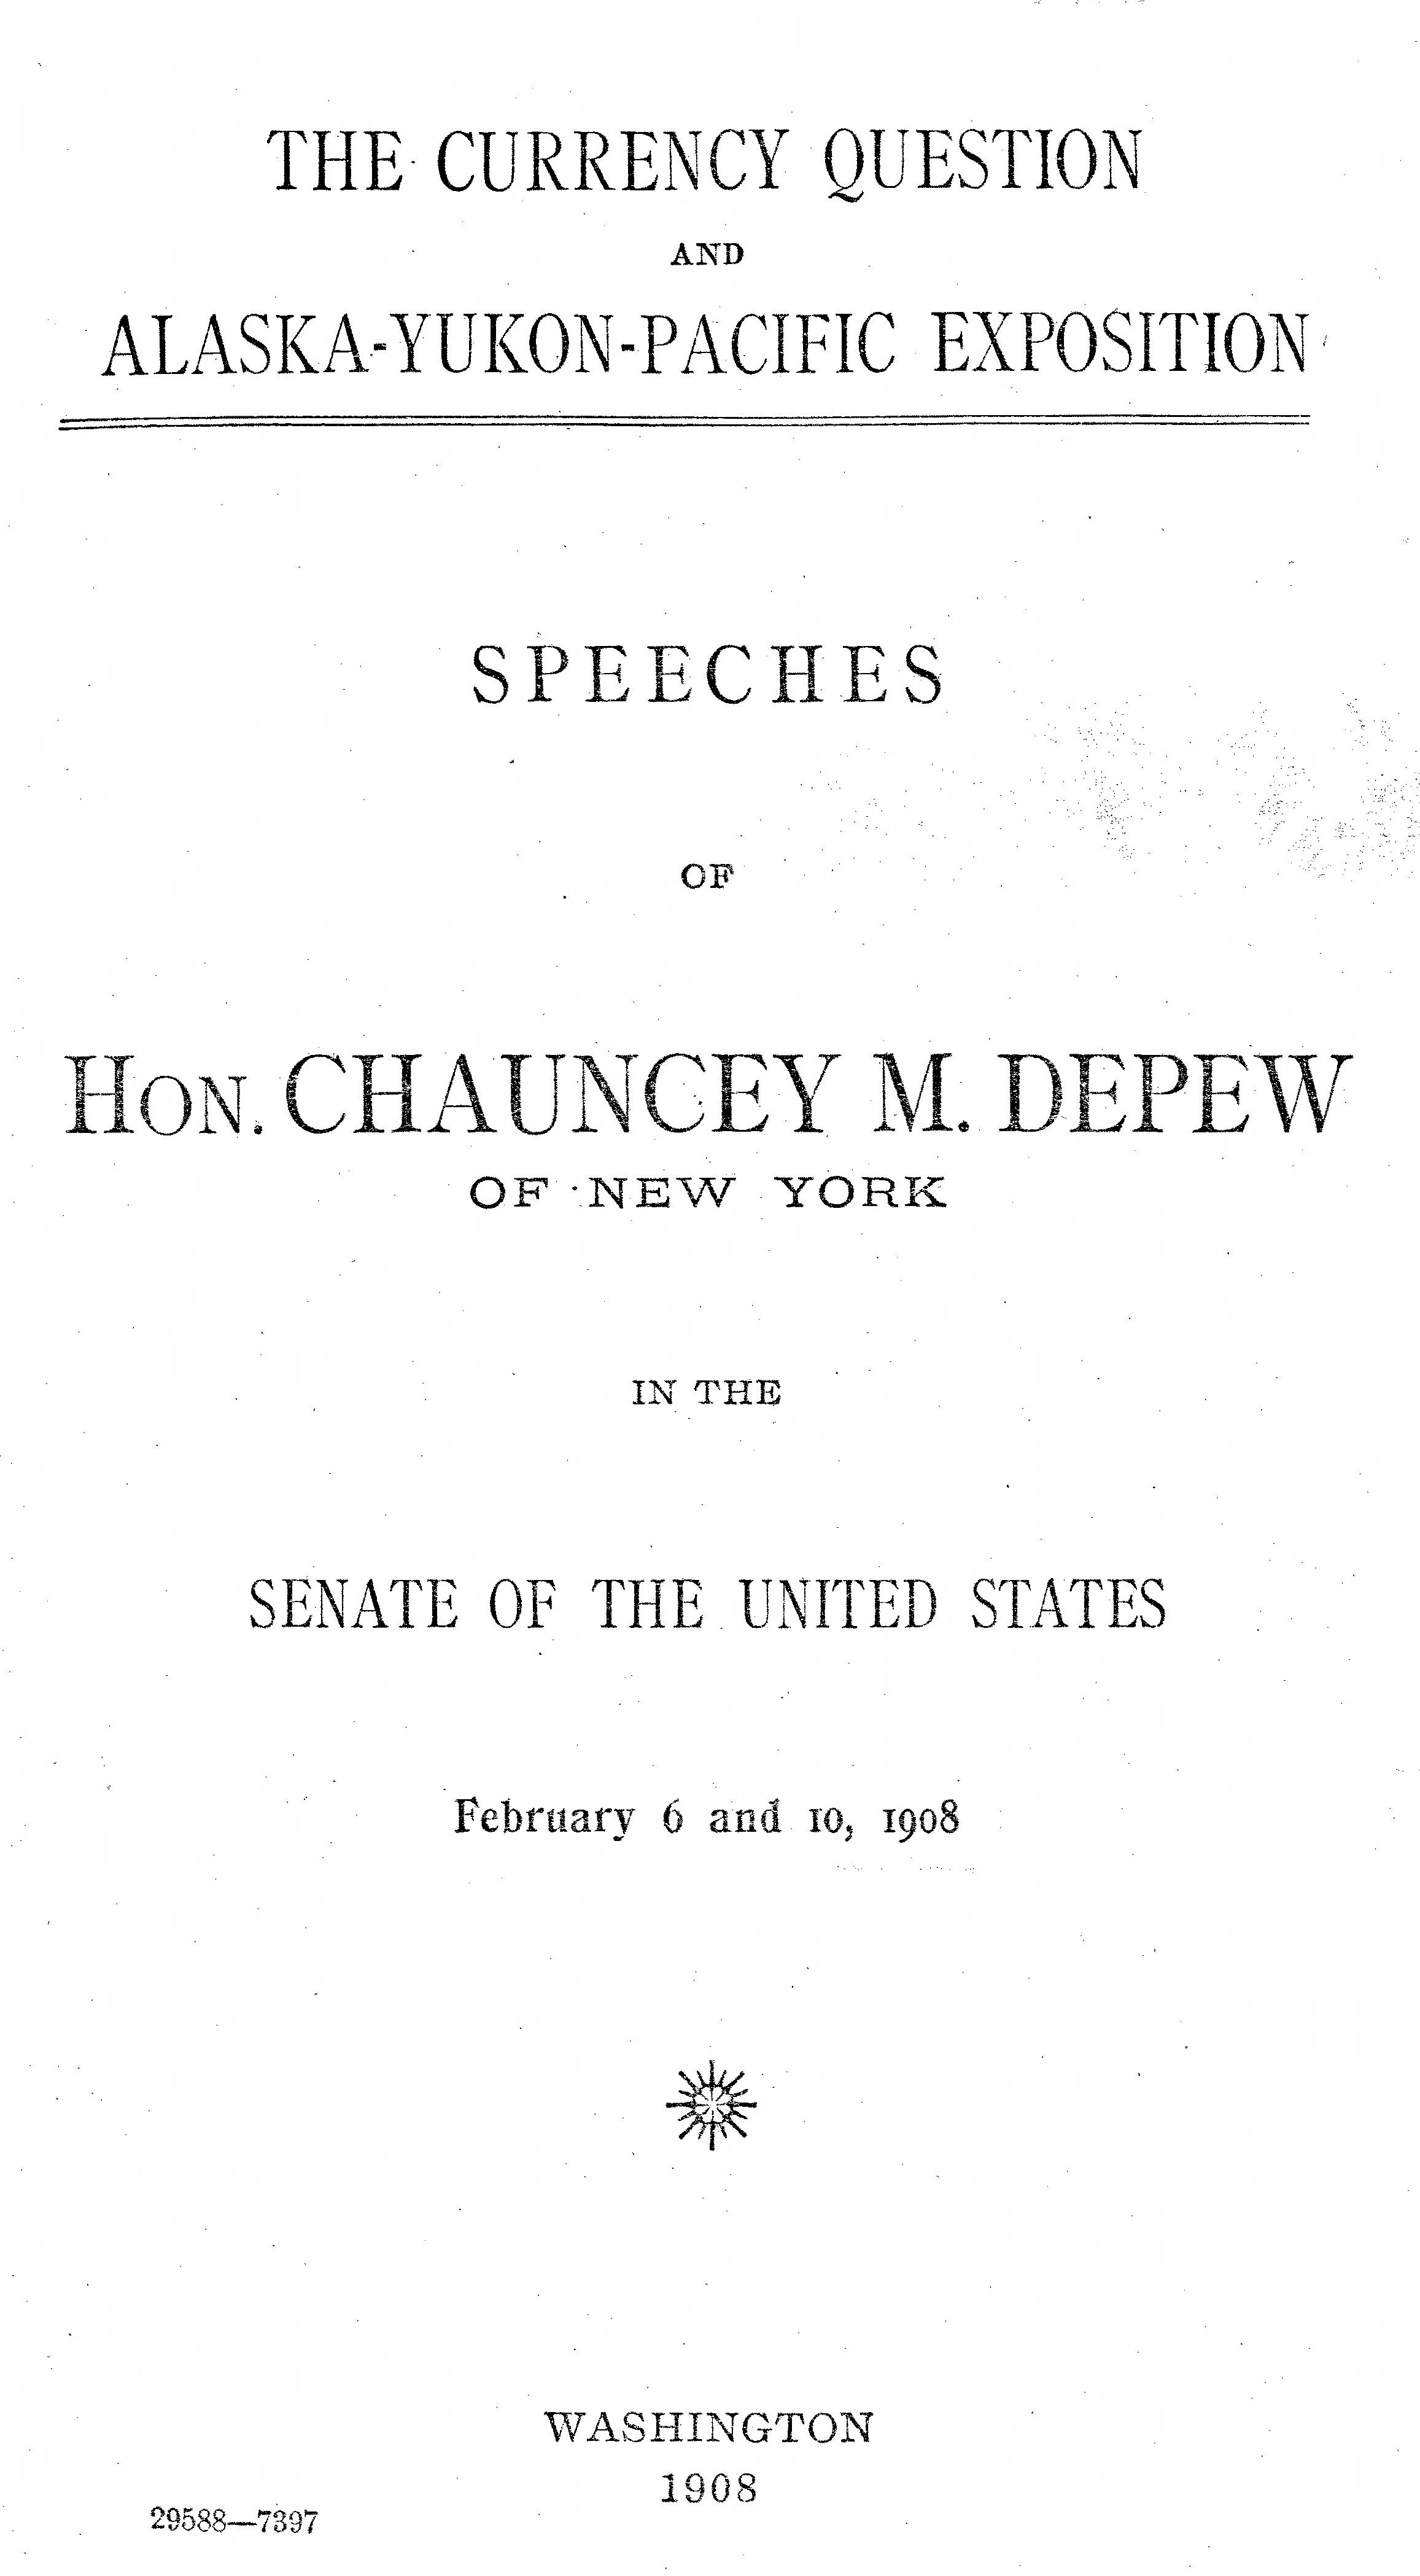 Currency question and Alaska-Yukon-Pacific Exposition: speeches of Hon. Chauncey M. Depew of New York in the Senate of the United States: February 6 and 10, 1908.